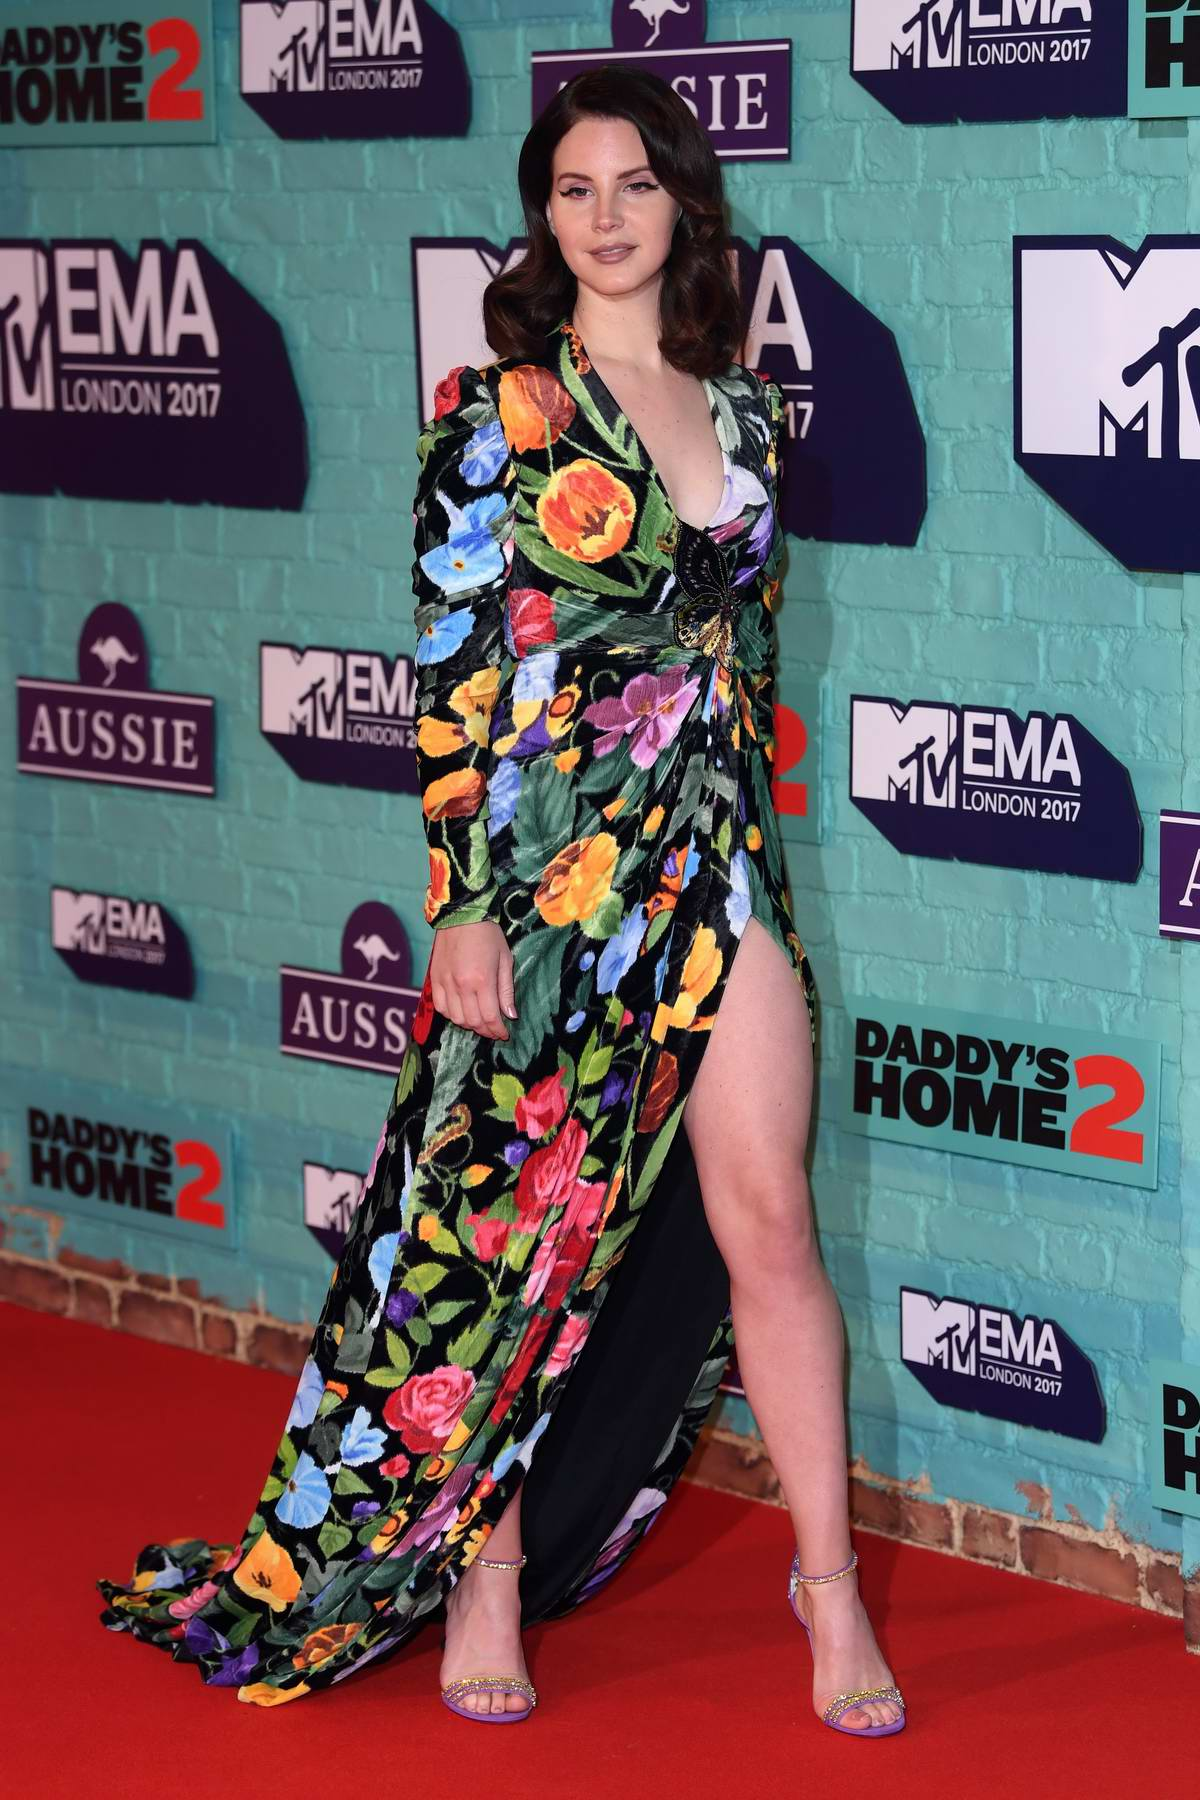 Lana Del Rey at the 24th MTV Europe Music Awards held at SSE Arena Wembley in London